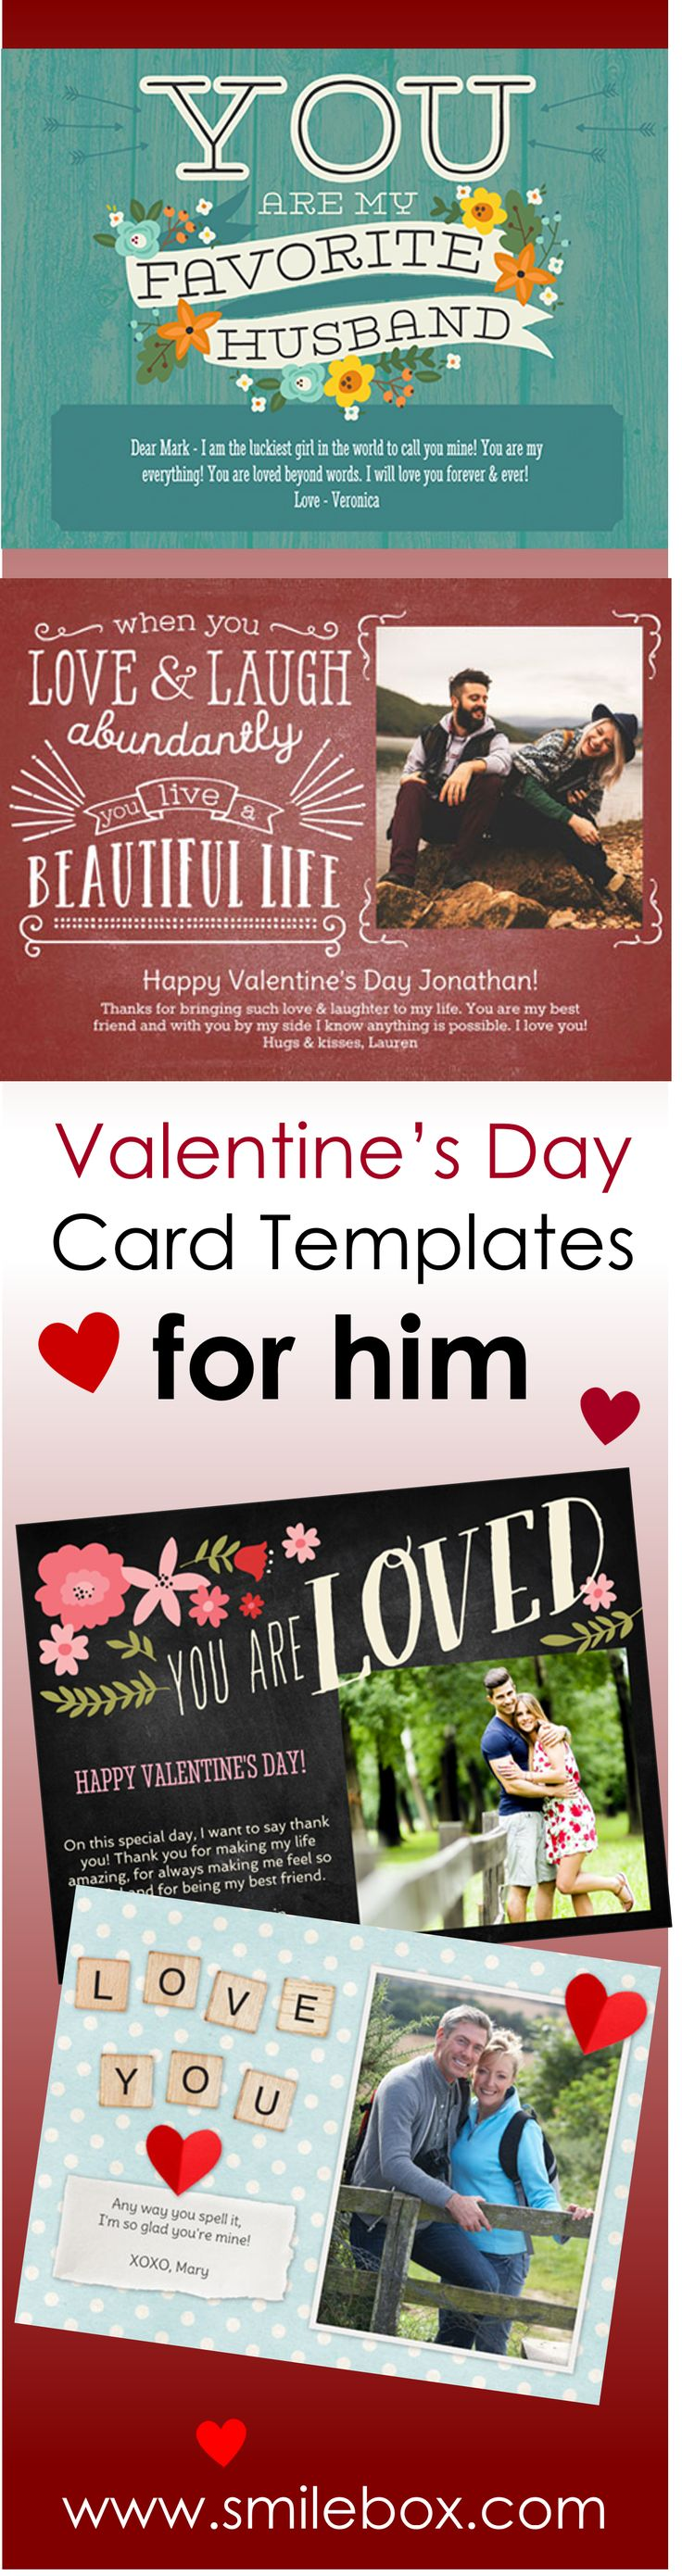 It's easy to create your own Valentine's Day card, from whimsical and quirky to traditional and vintage. Make the style your own with humor and sarcasm in our funny Valentine's Day collection. Our diverse variety of formats, themes and styles includes thousands of collages, invitations, cards, slideshows, and more.